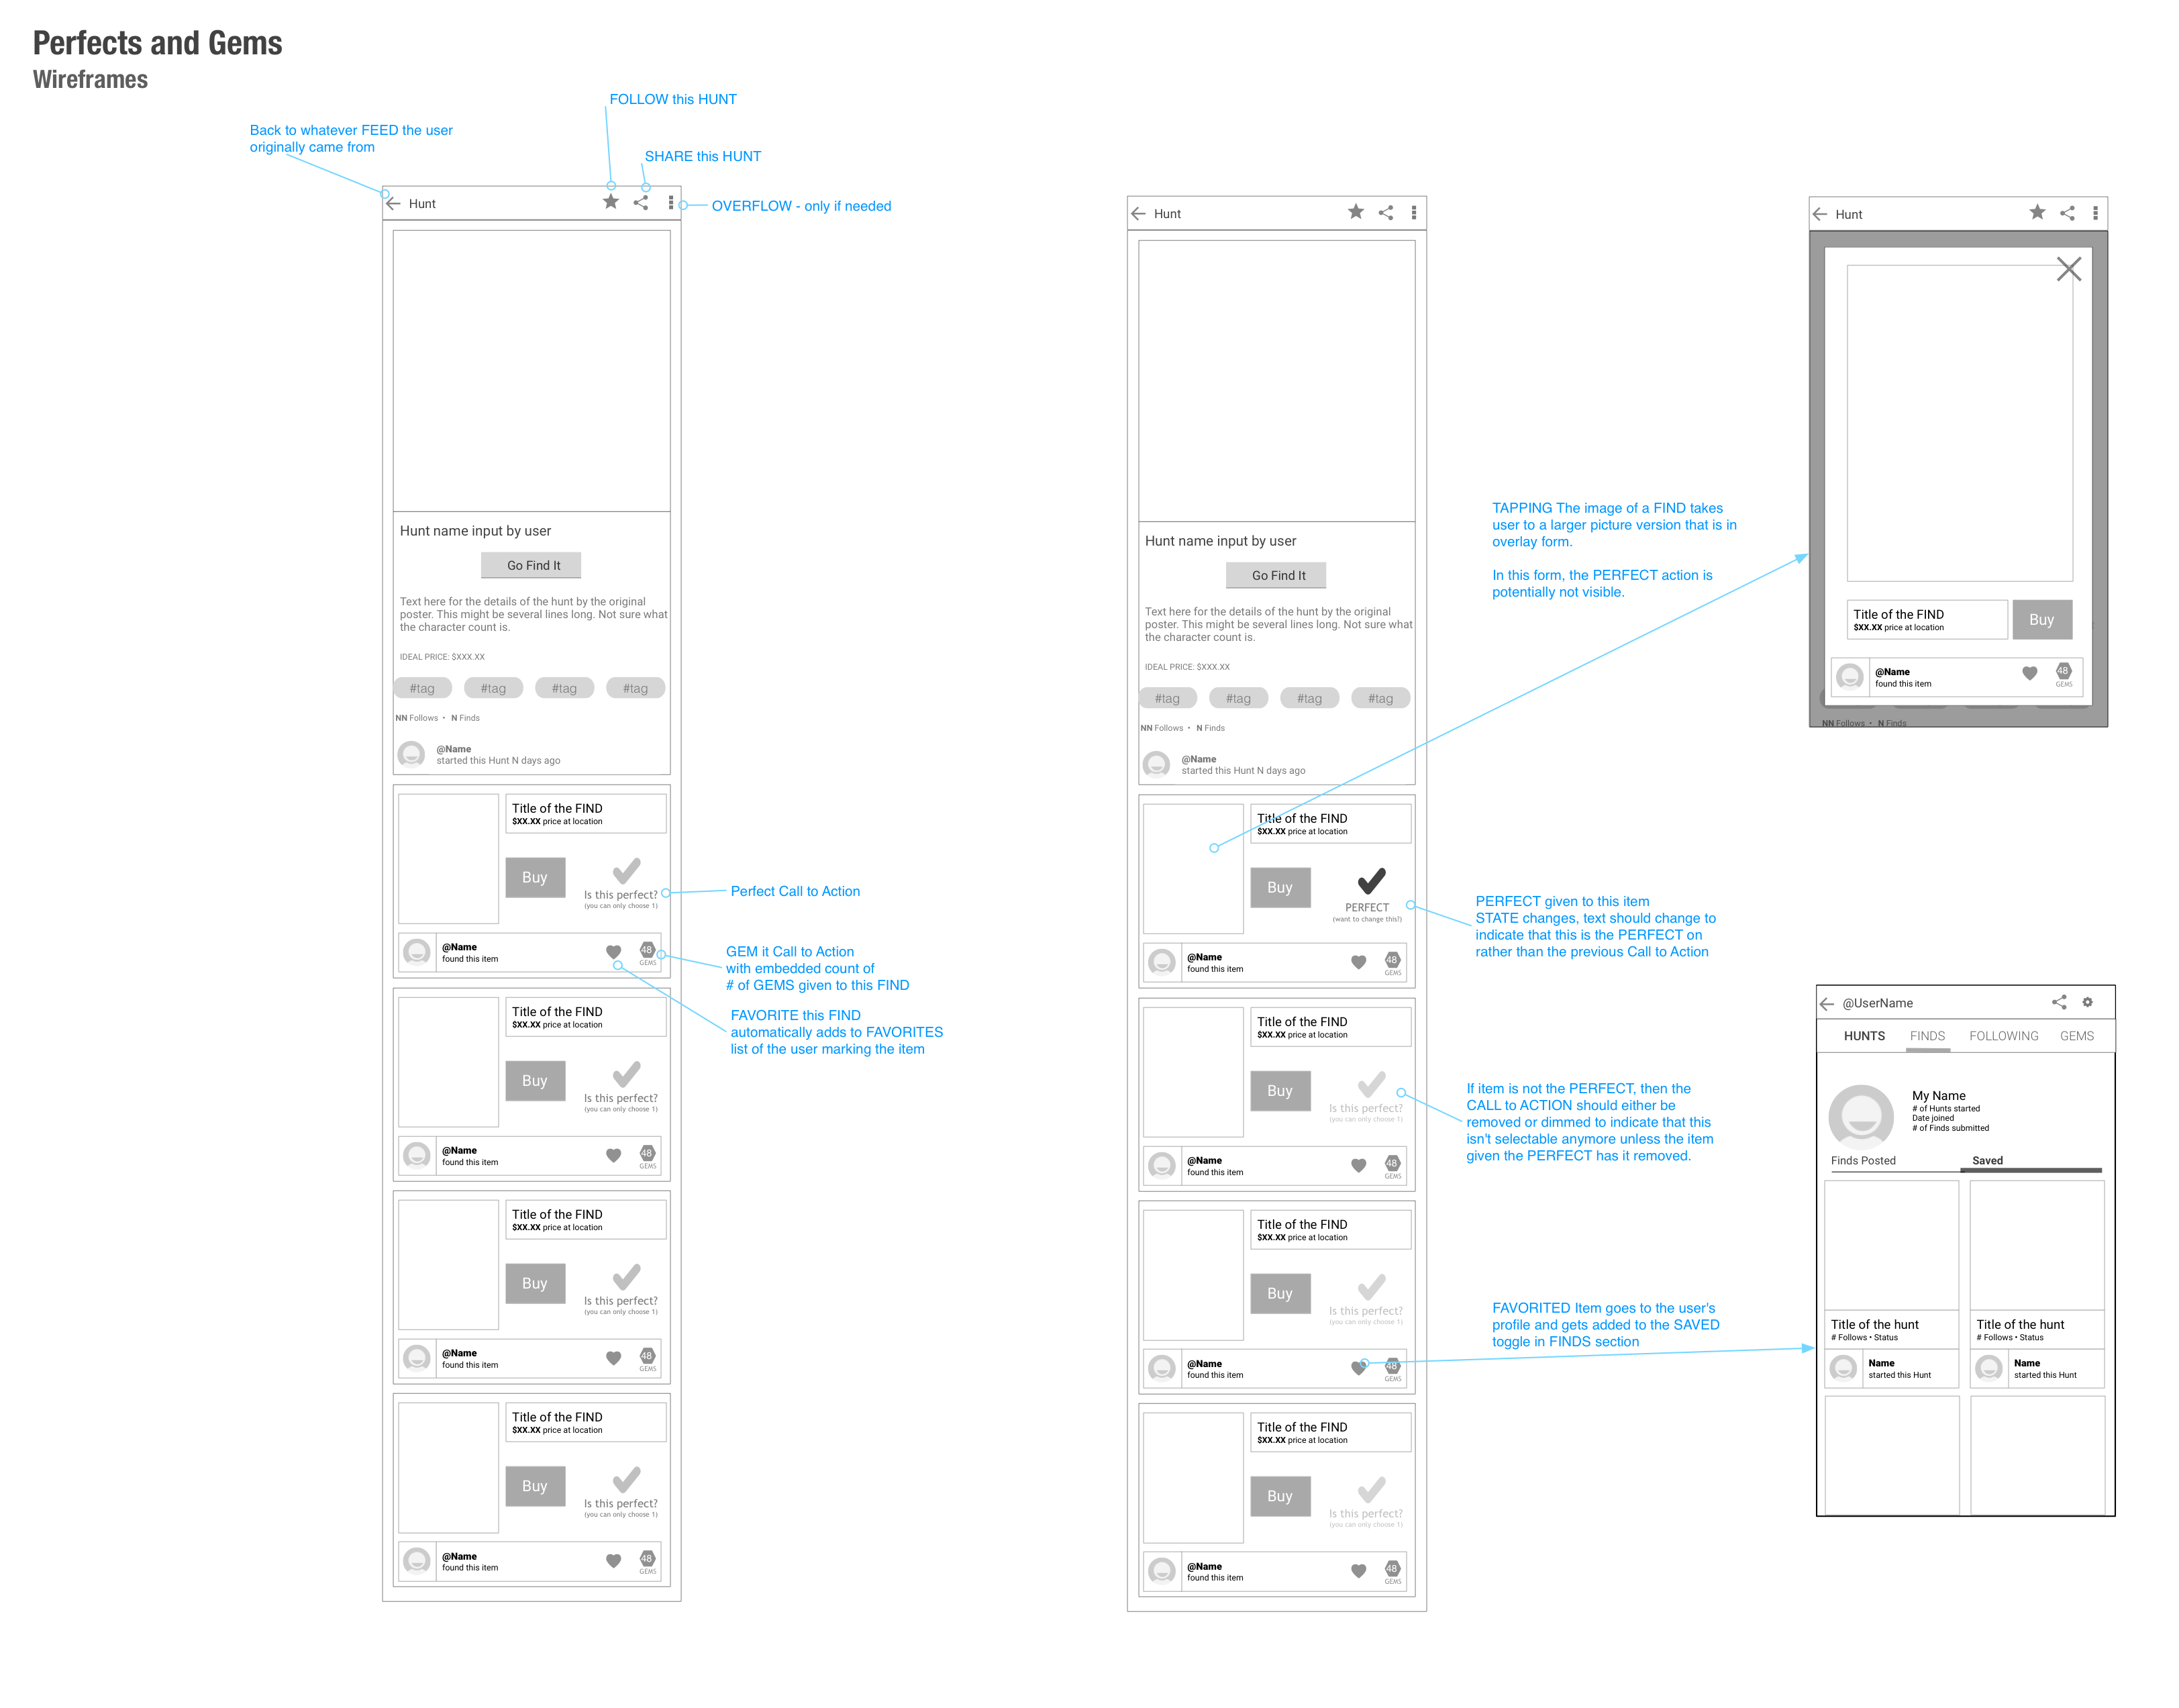 Perfects&Gems-Wireframes